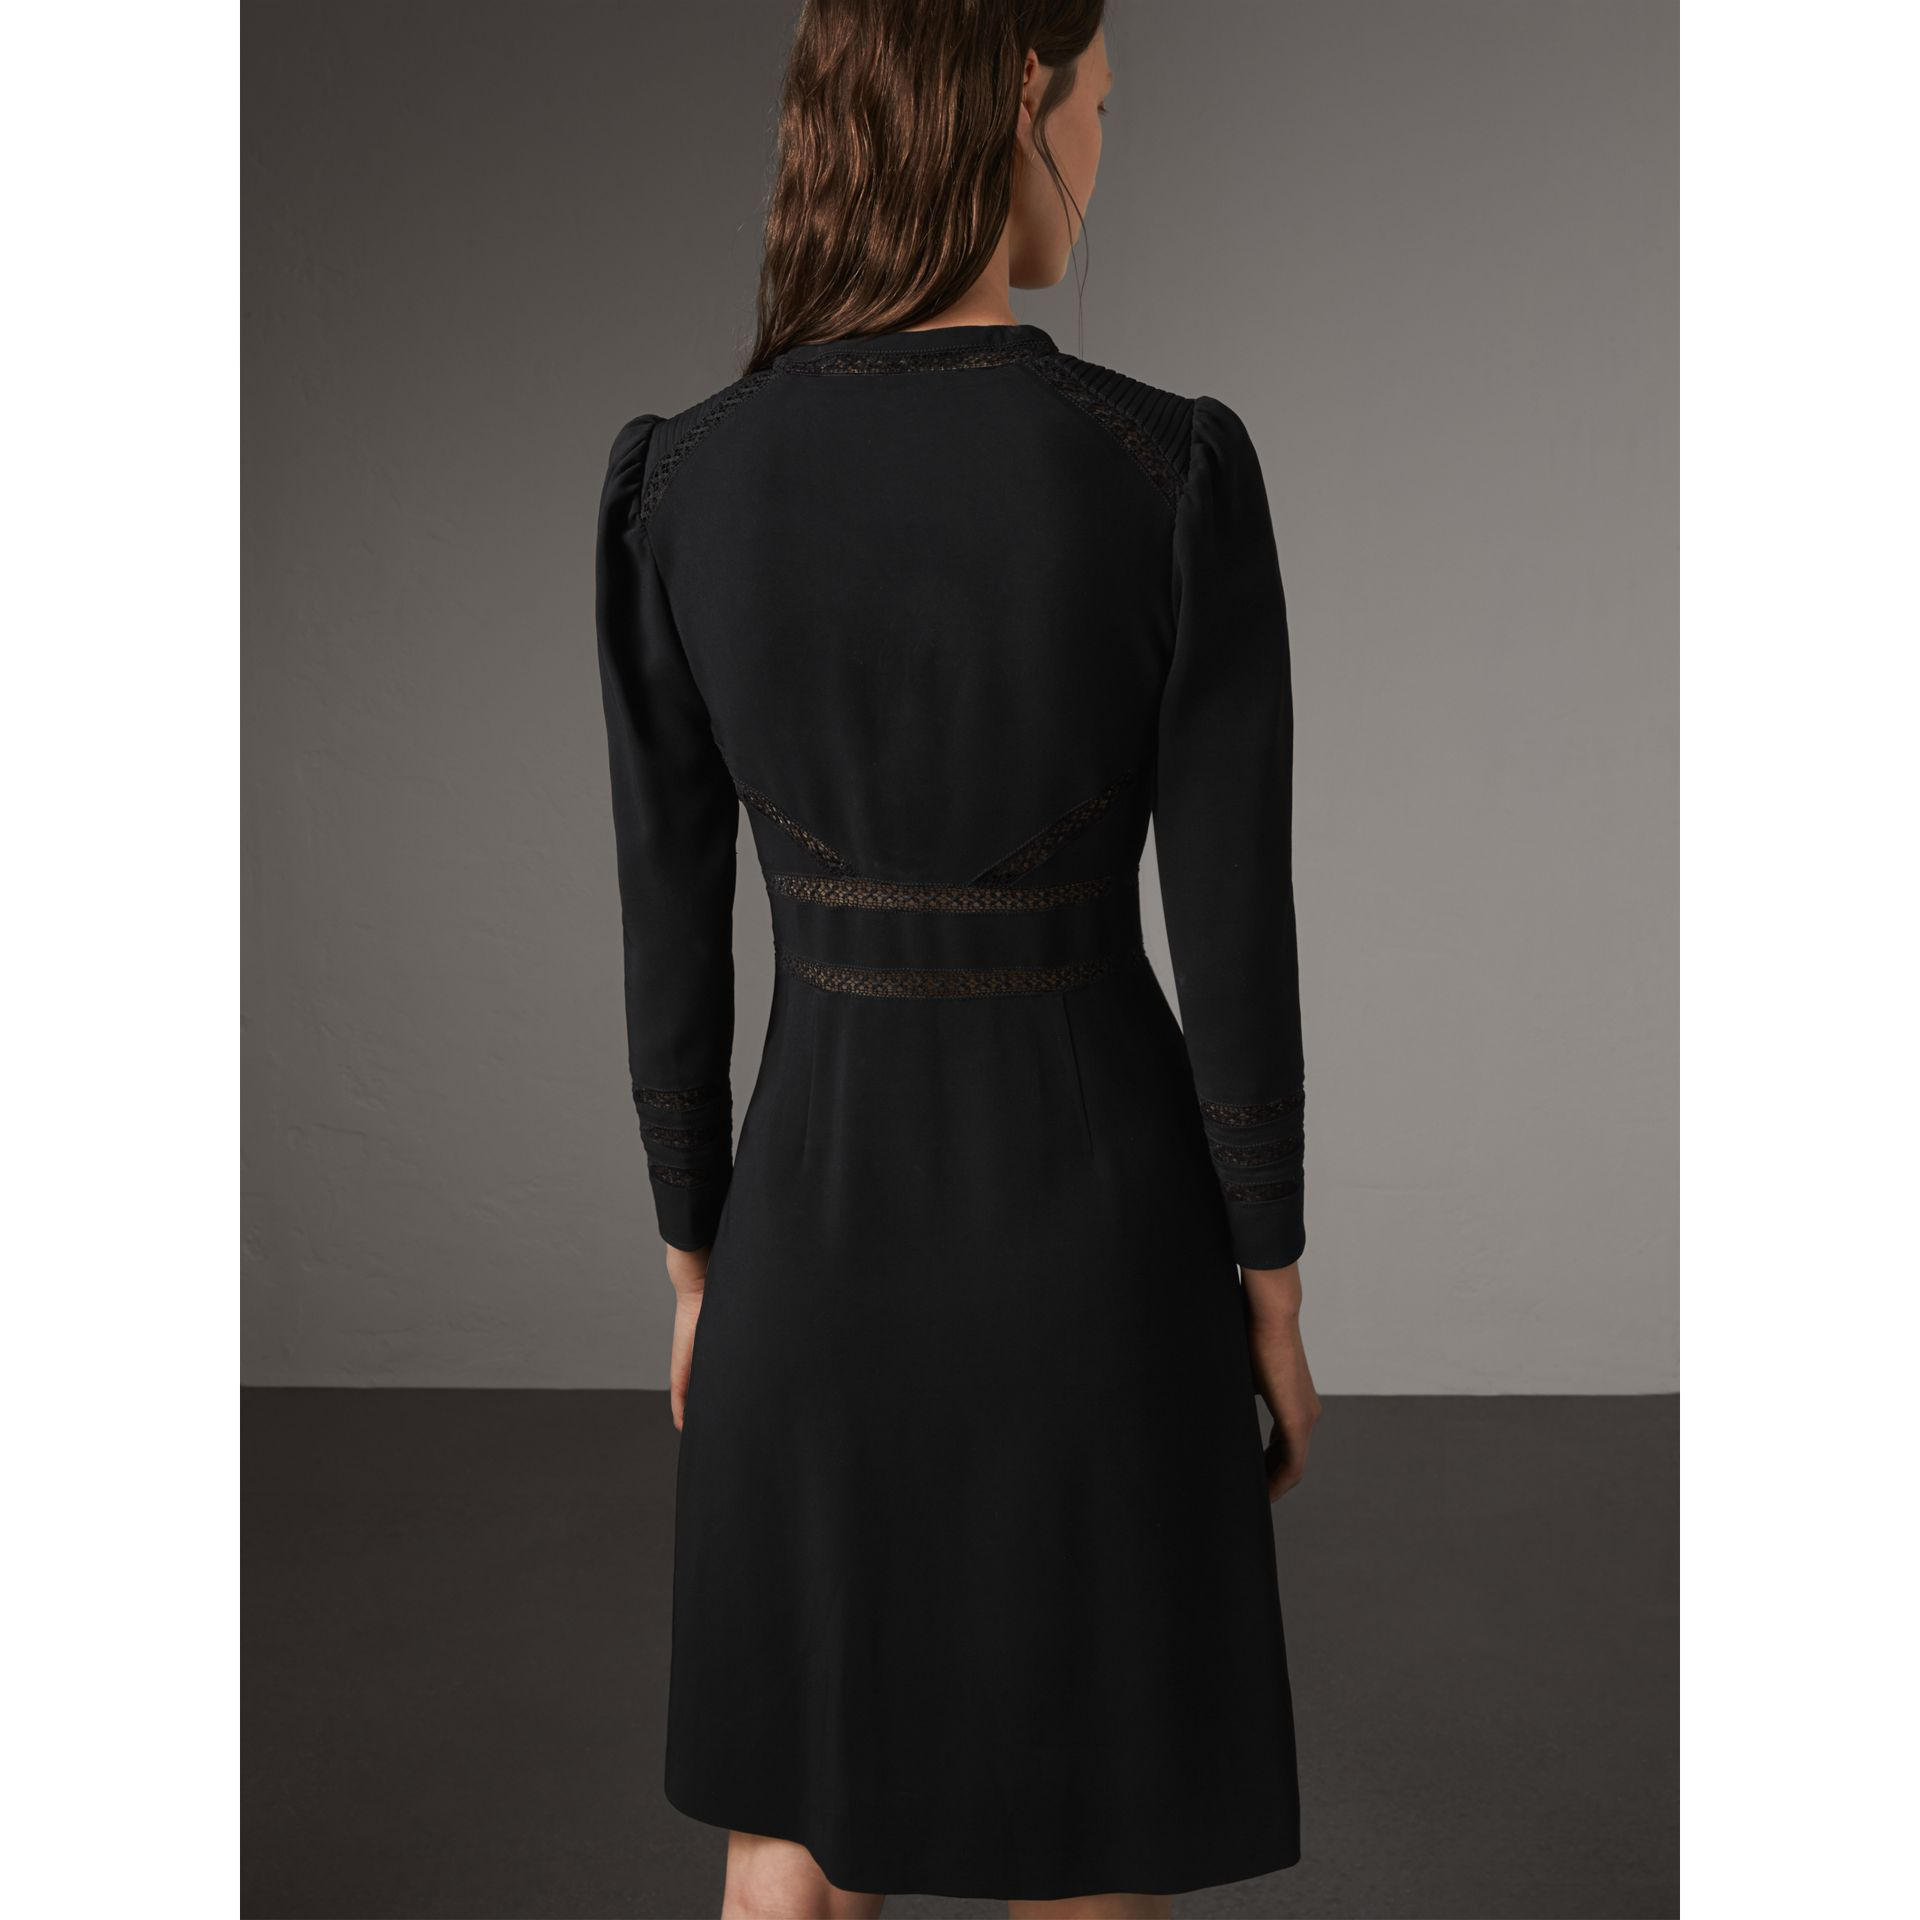 Lace Insert Fitted Dress in Black - Women | Burberry - gallery image 3